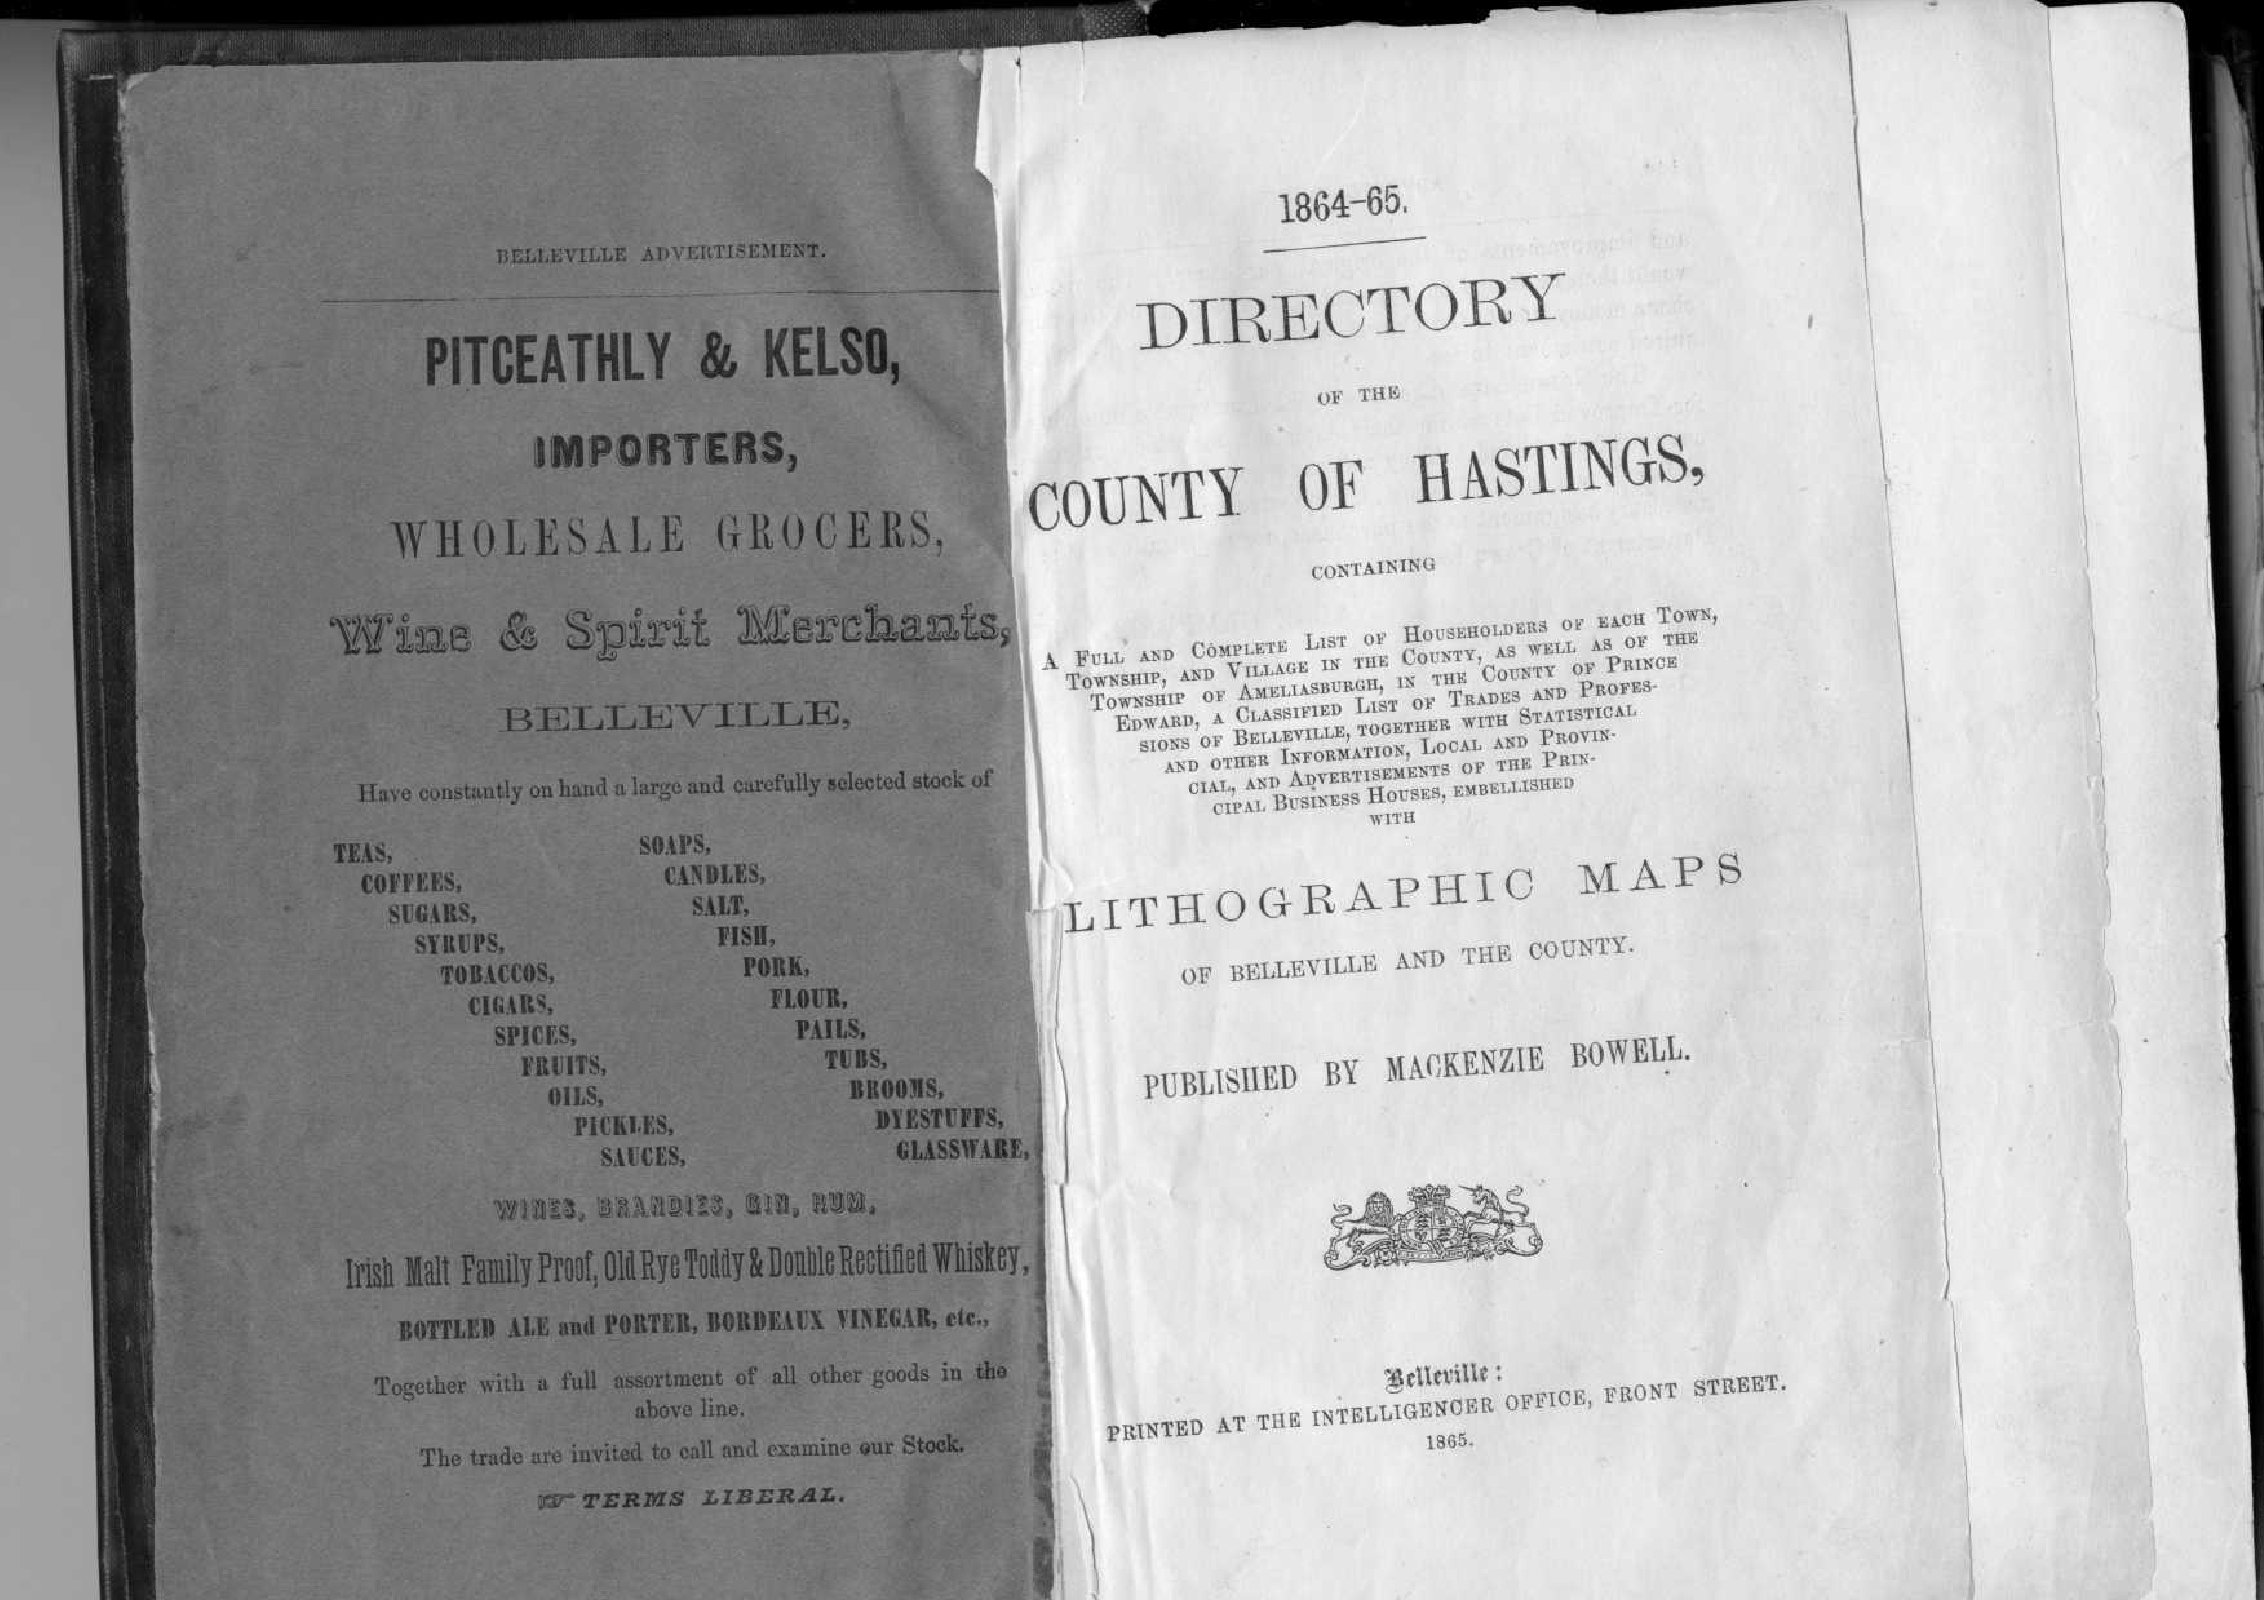 1864-1865 Directory of the County of Hastings